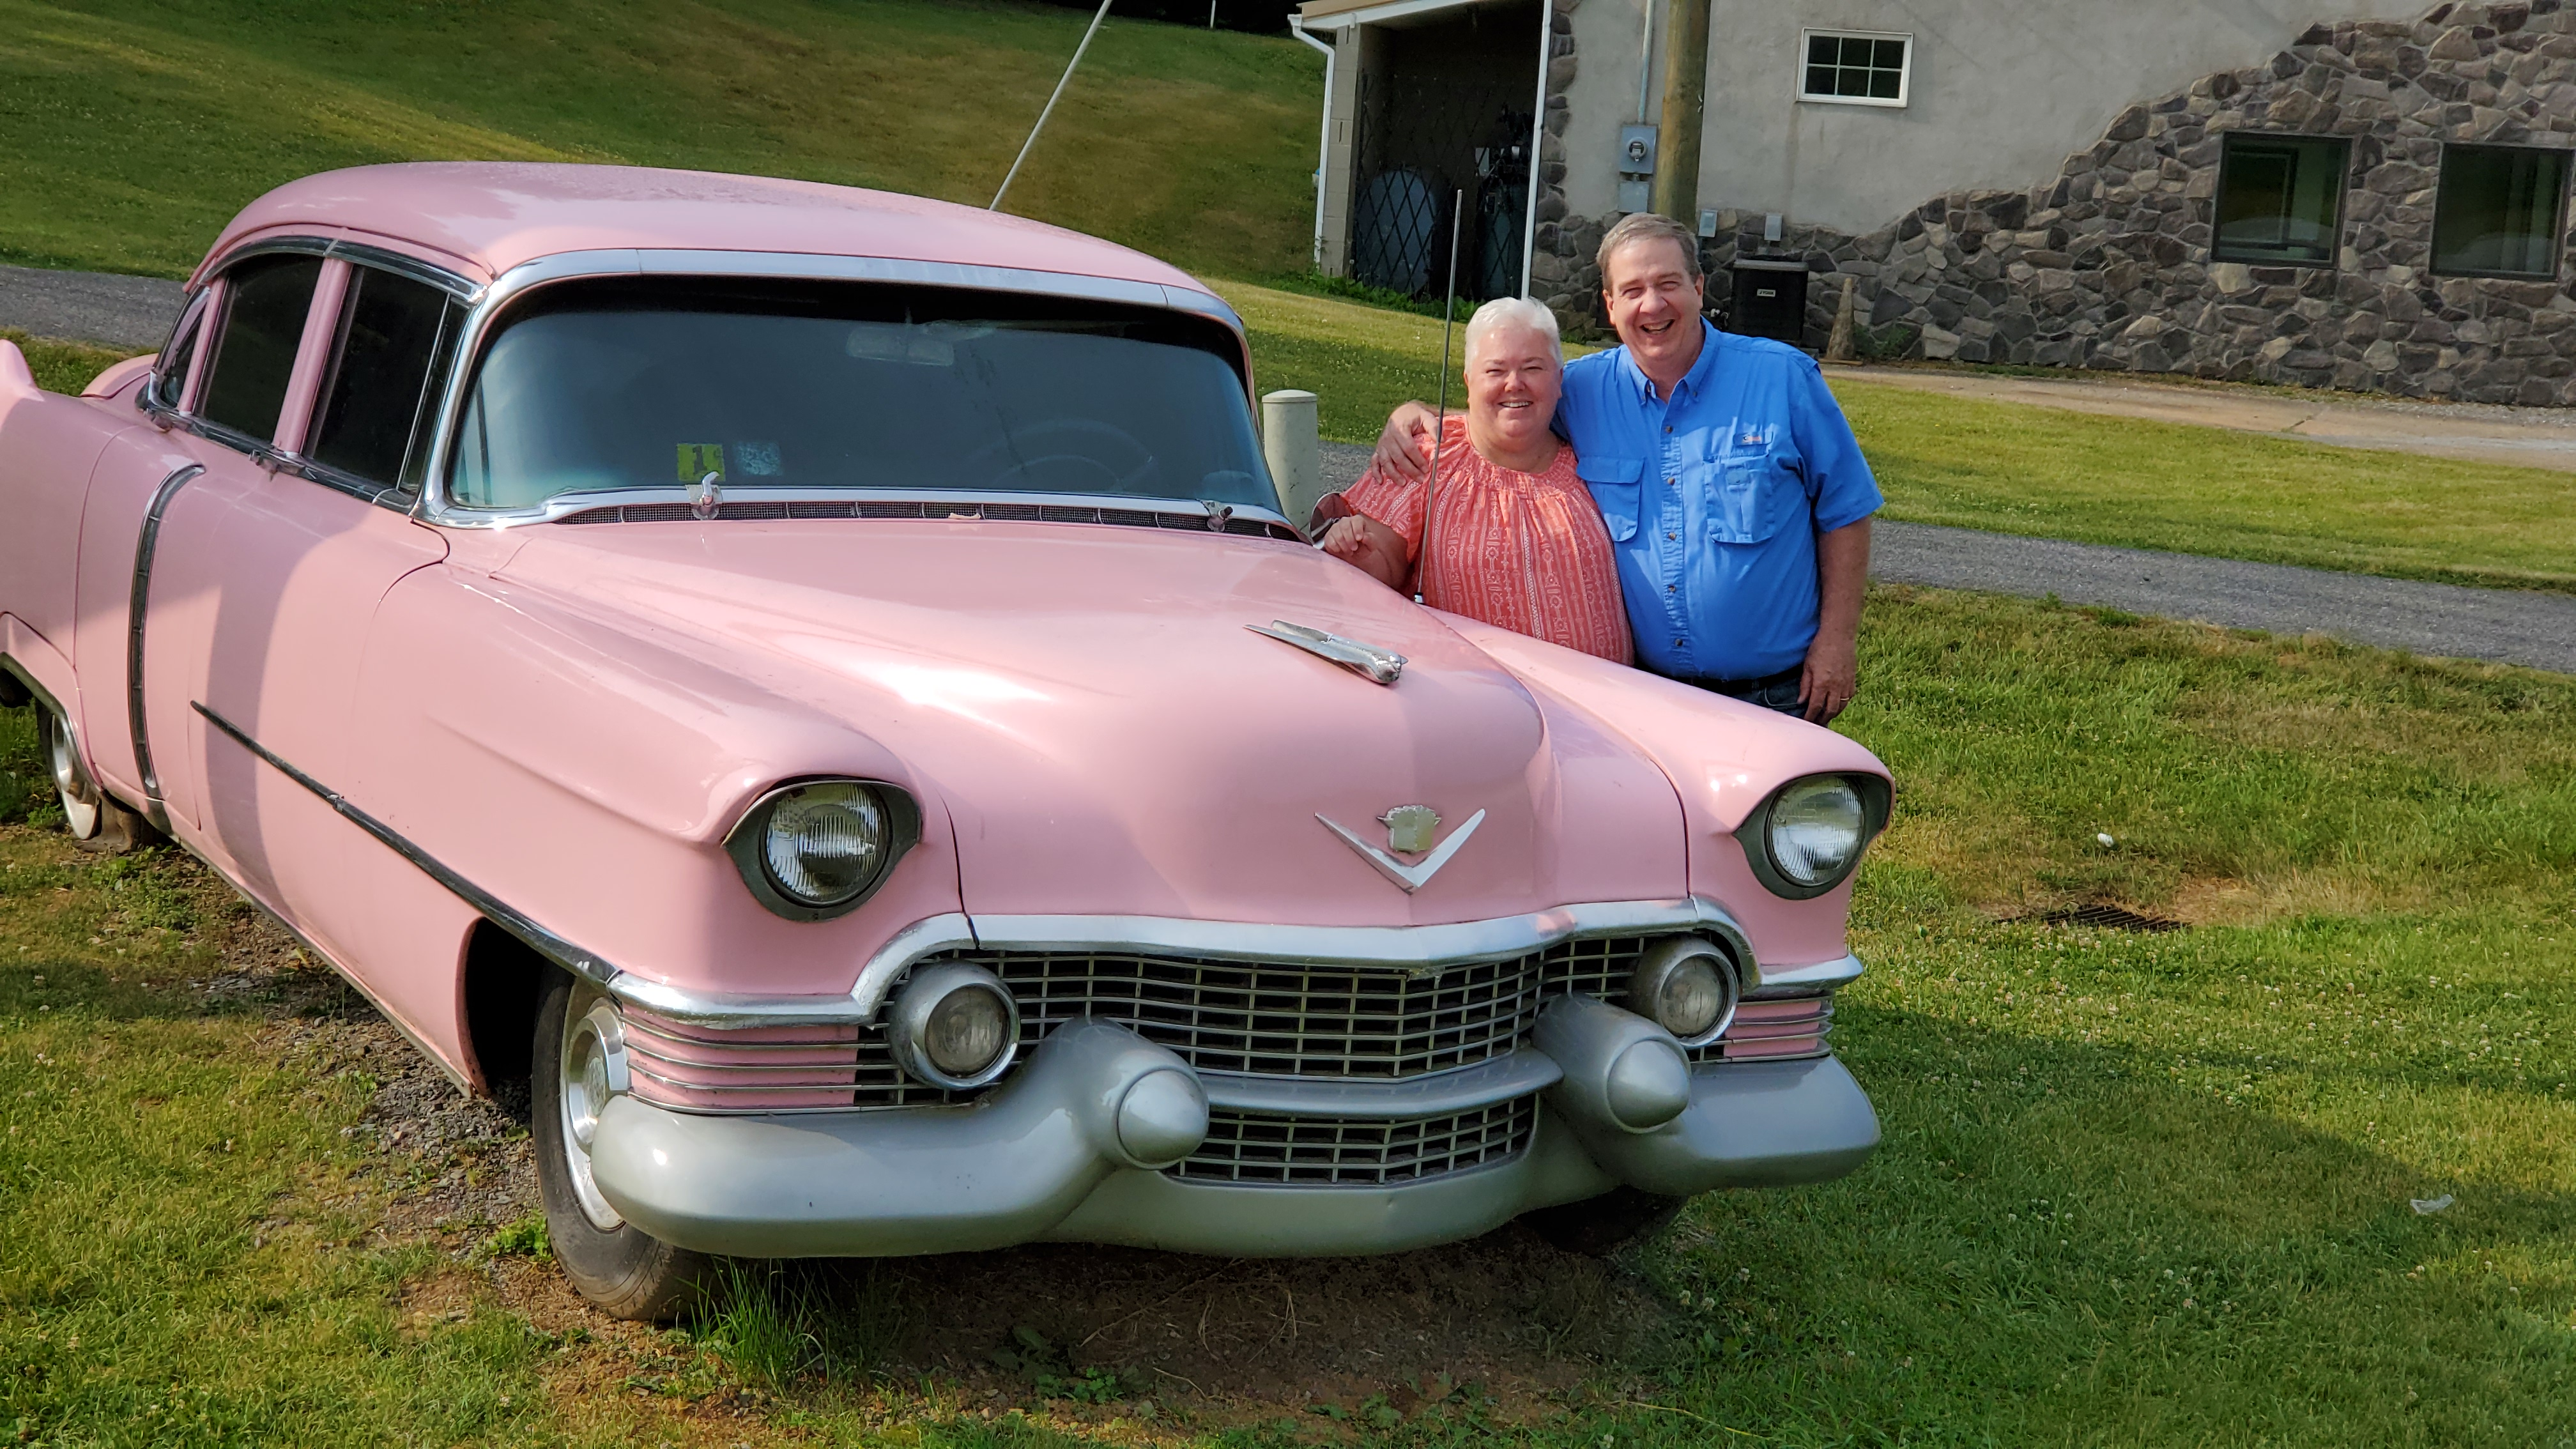 Pink Cadillac Cafe